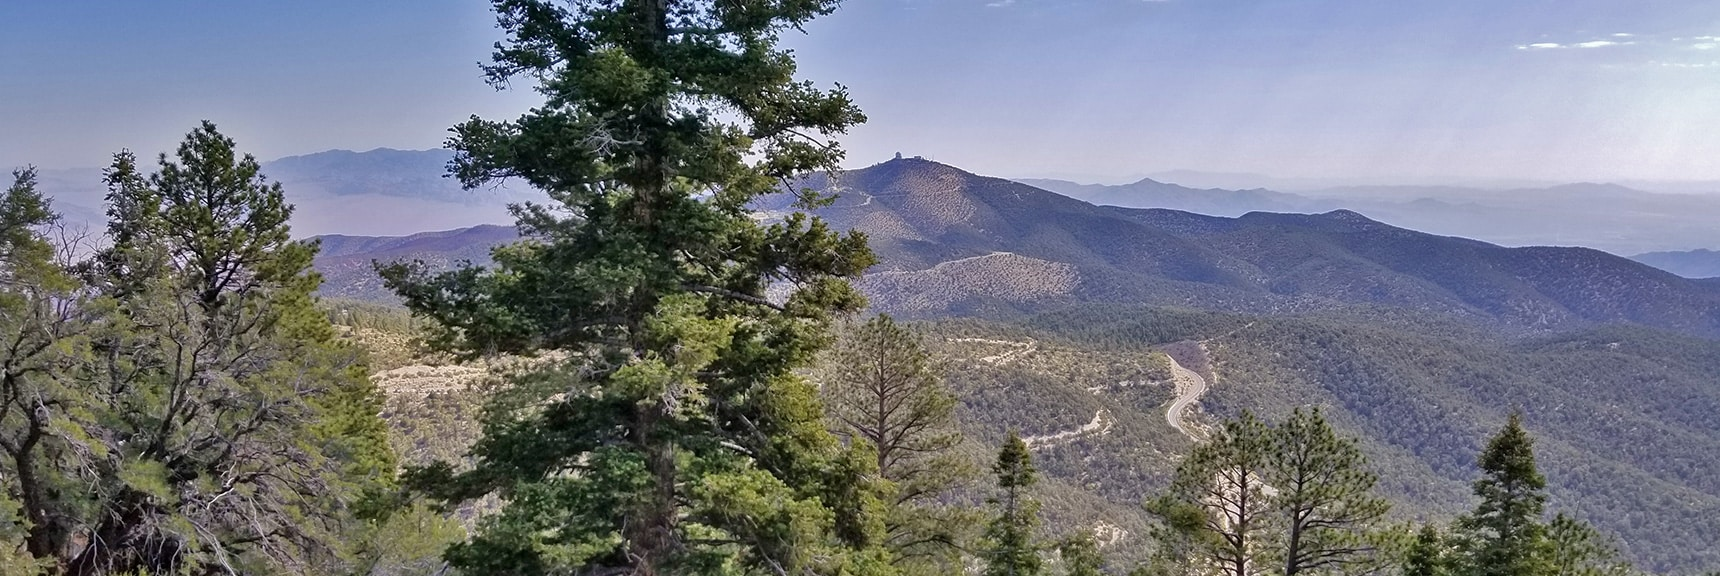 Charleston Observatory, Hwy 158, North Loop Trailhead and Sheep Range | Robbers Roost and Beyond | Spring Mountains, Nevada